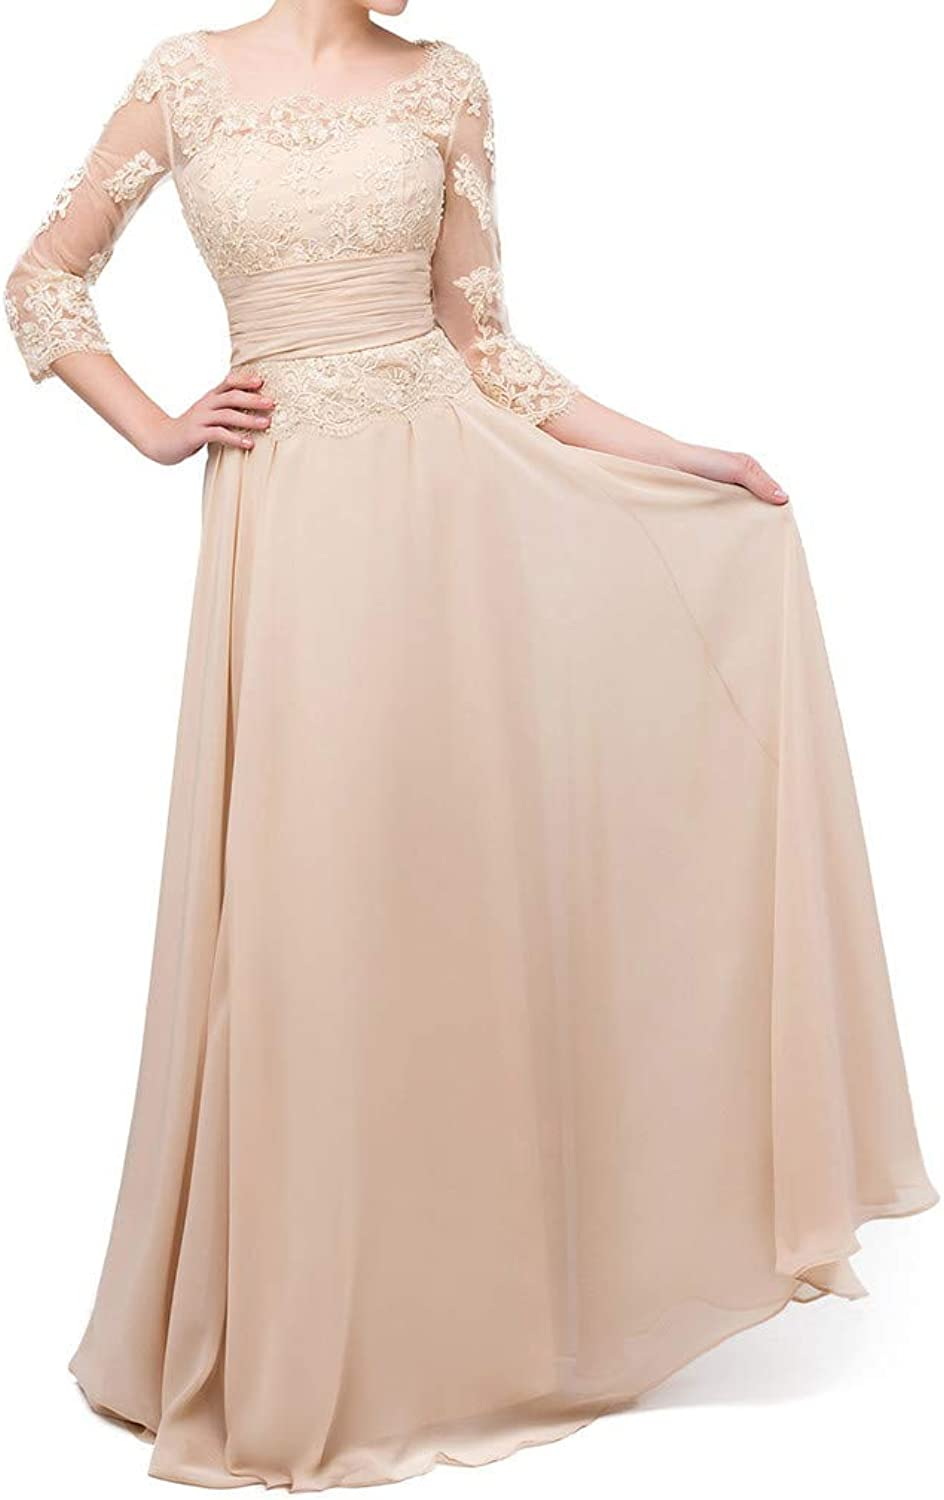 Butmoon Womens Lace Mother of The Bride Dress Plus Size Long Champagne Formal Party Gown